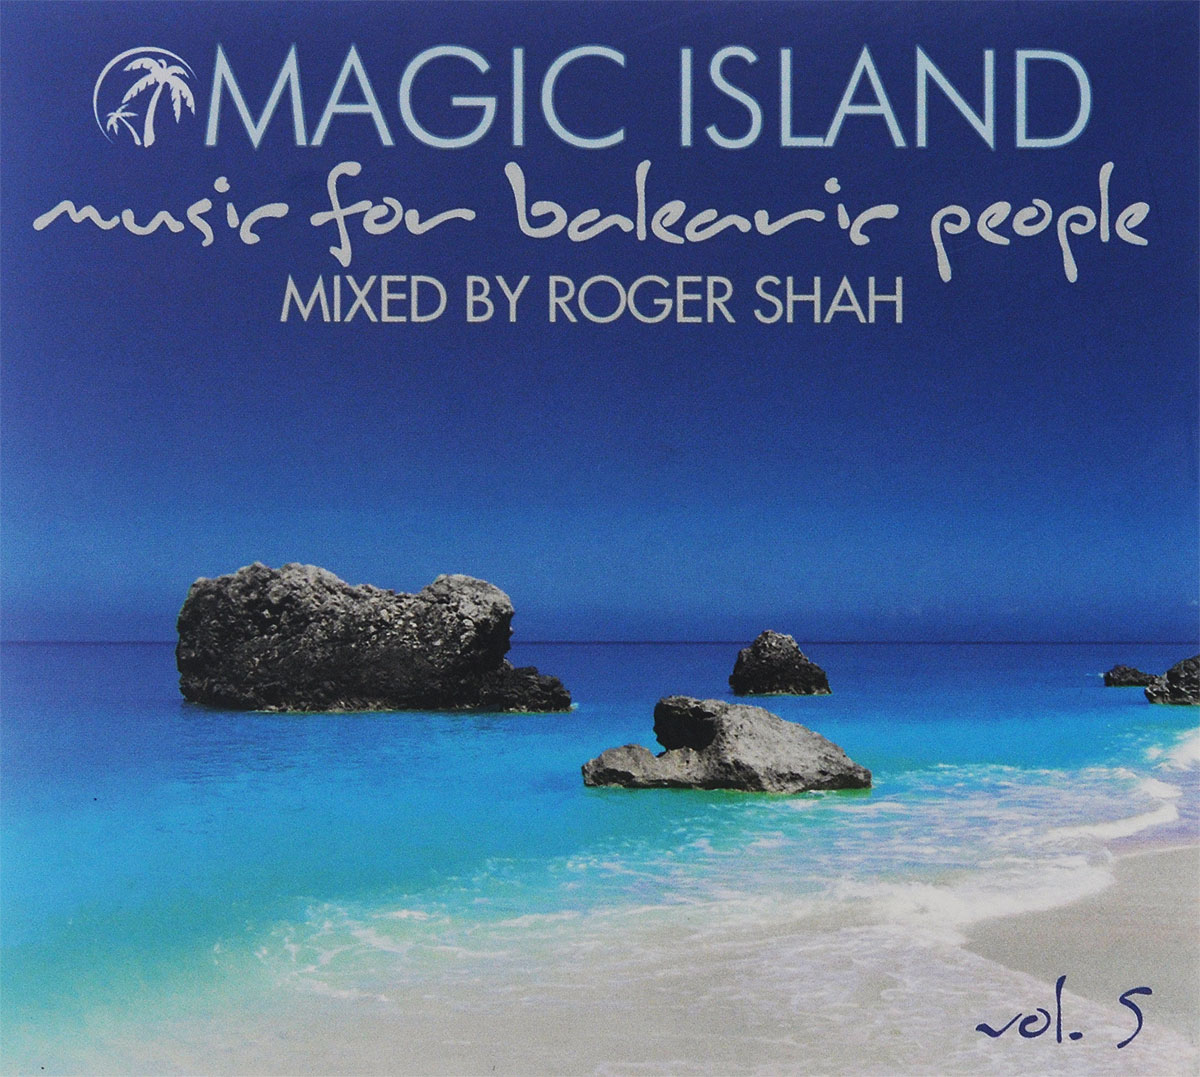 Magic Island vol. 5. Music For Balearic People. Mixed By Roger Shah (2 CD)